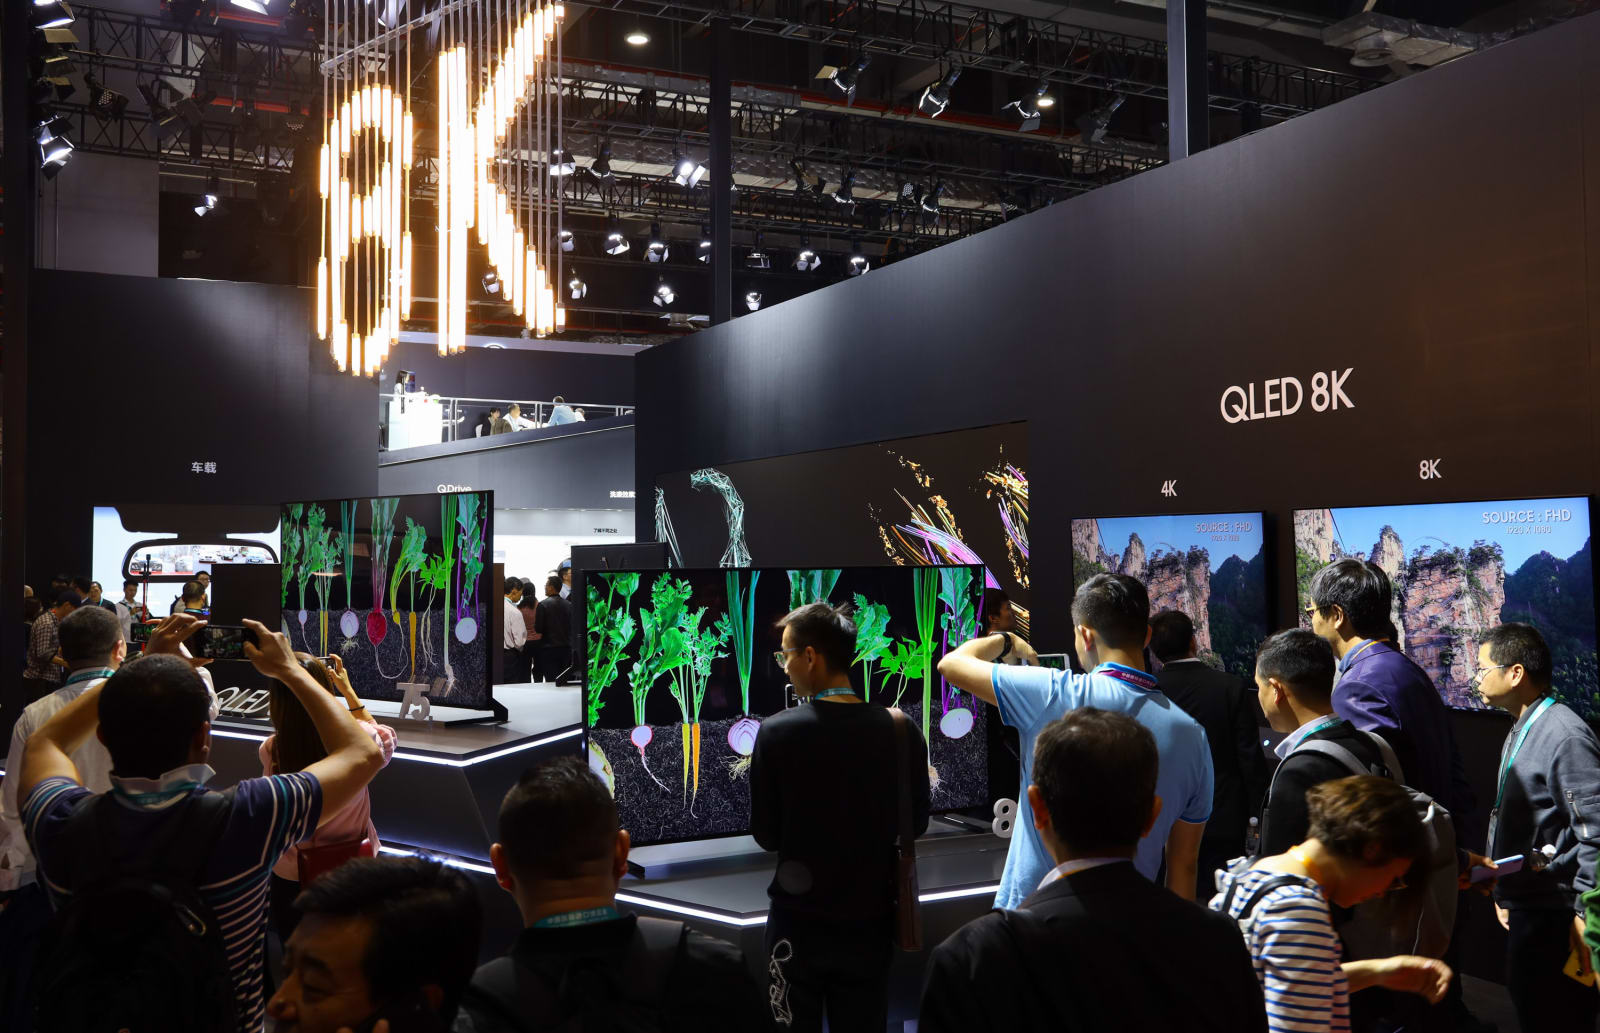 Tech industry sets official standard for 8K TVs